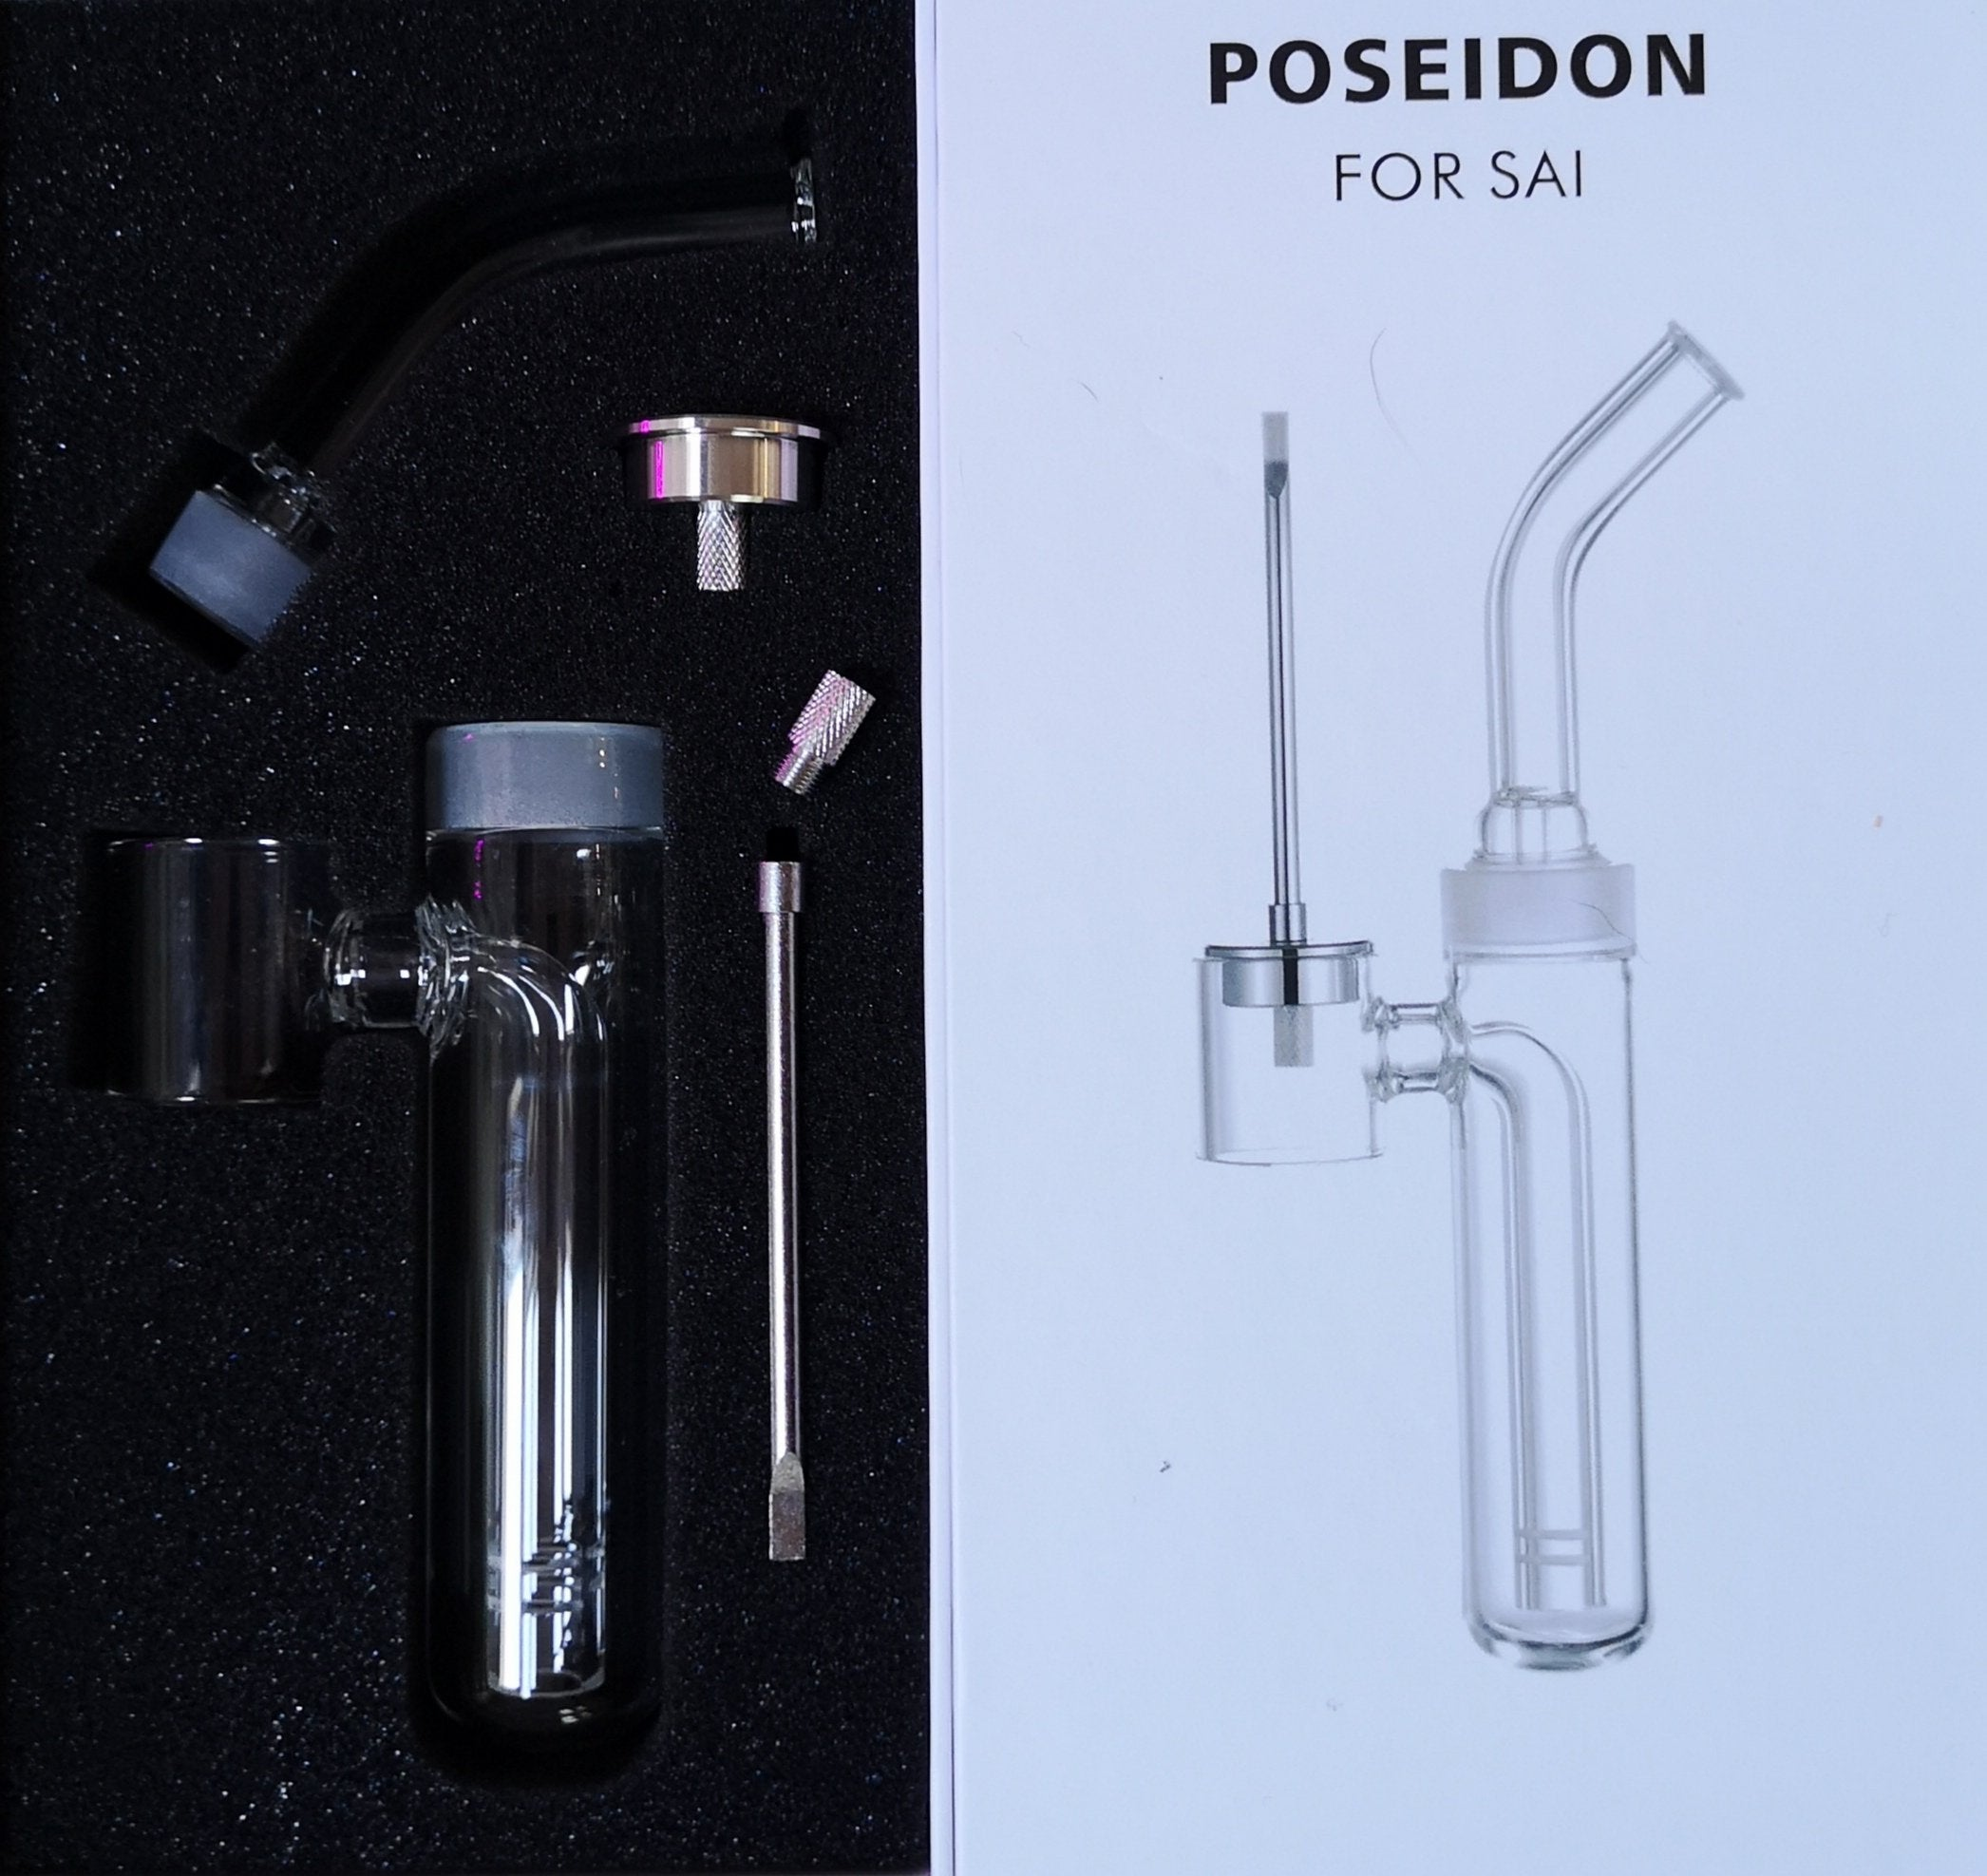 Poseidon V2 Water Tool Attachment for HVT Sai Atomizer - Recommended Vape Supplies UK